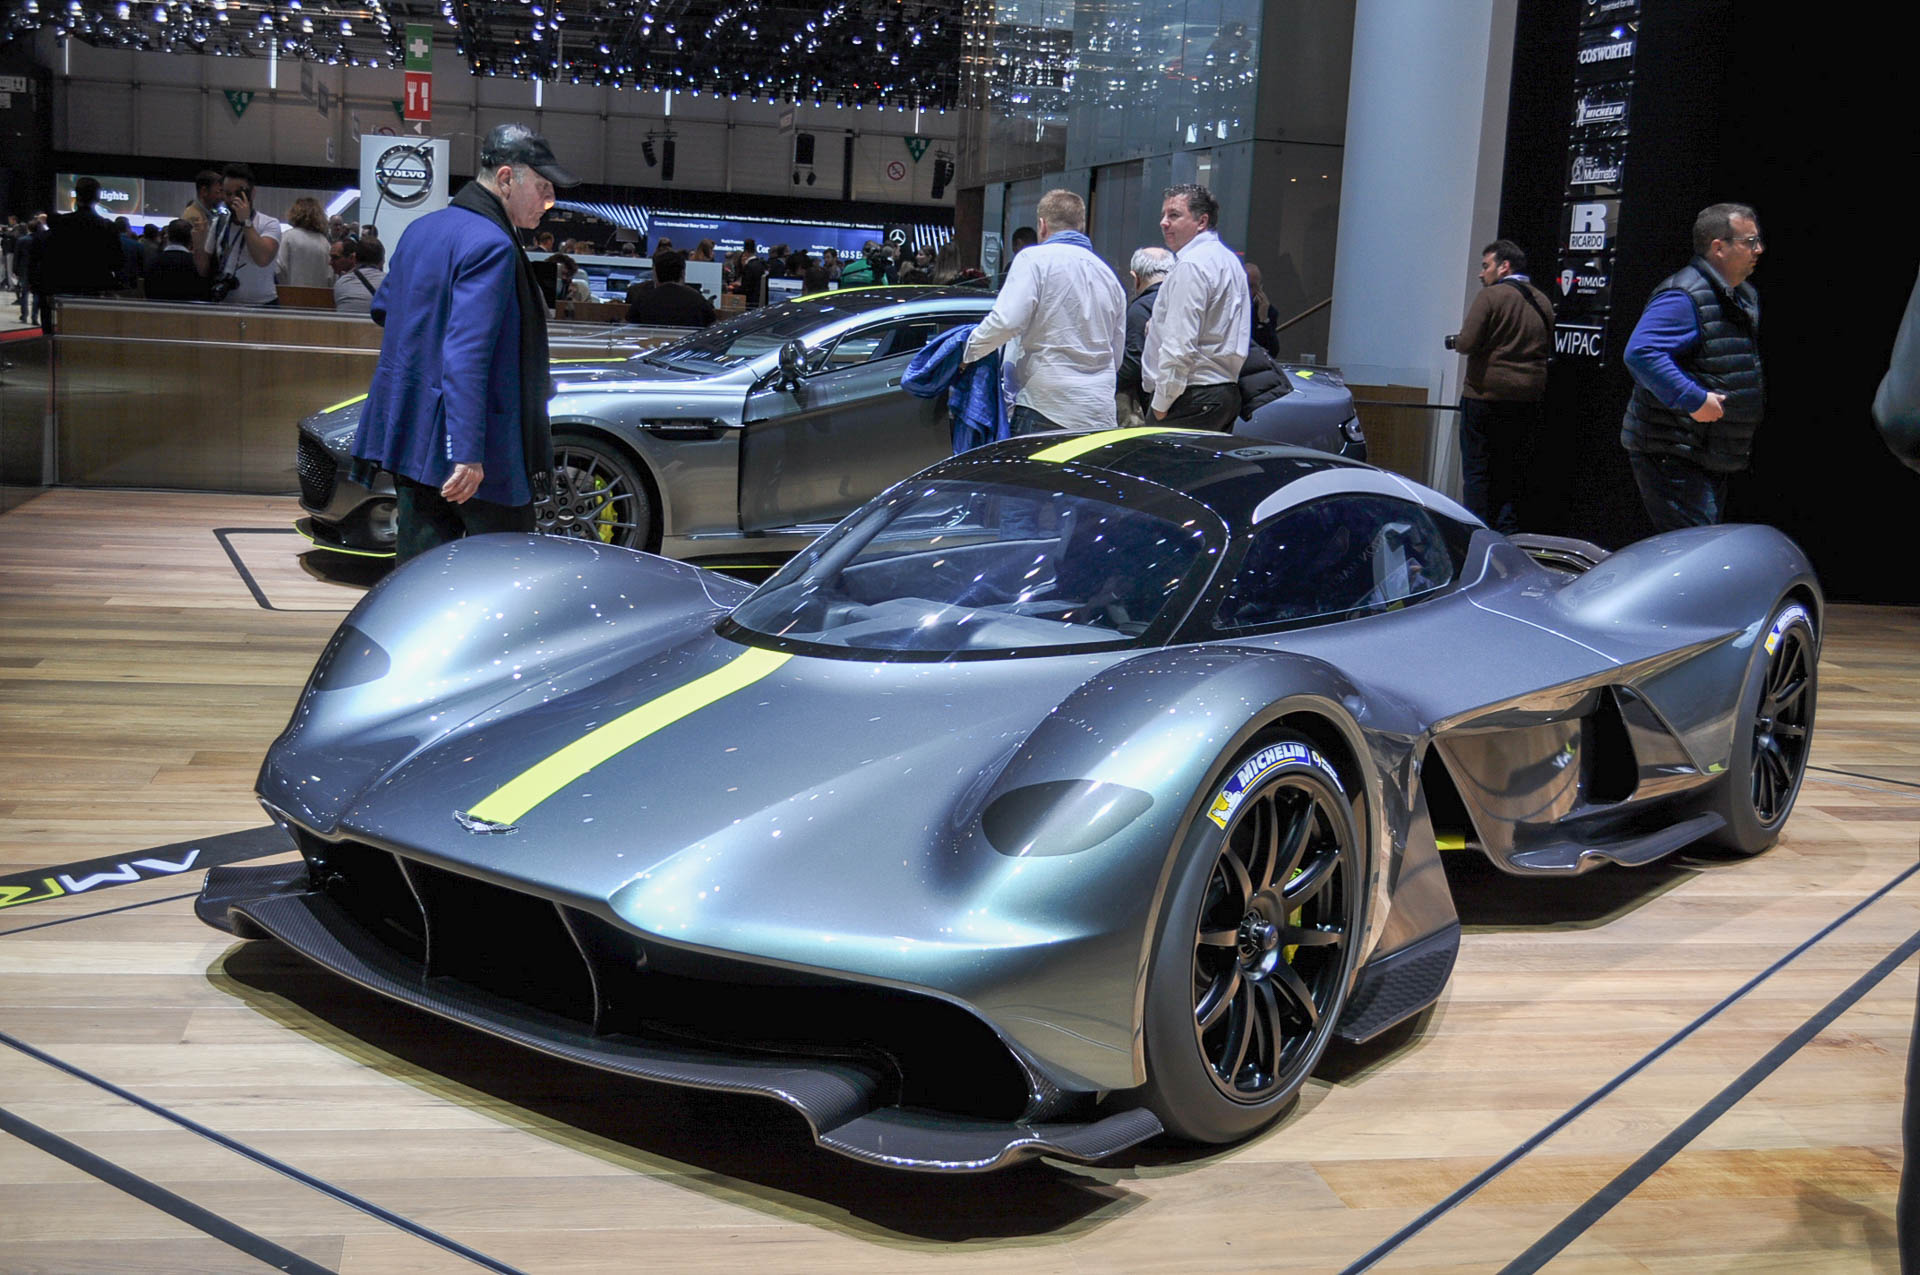 Aston Martin Hypercar Named Valkyrie Presented In Geneva